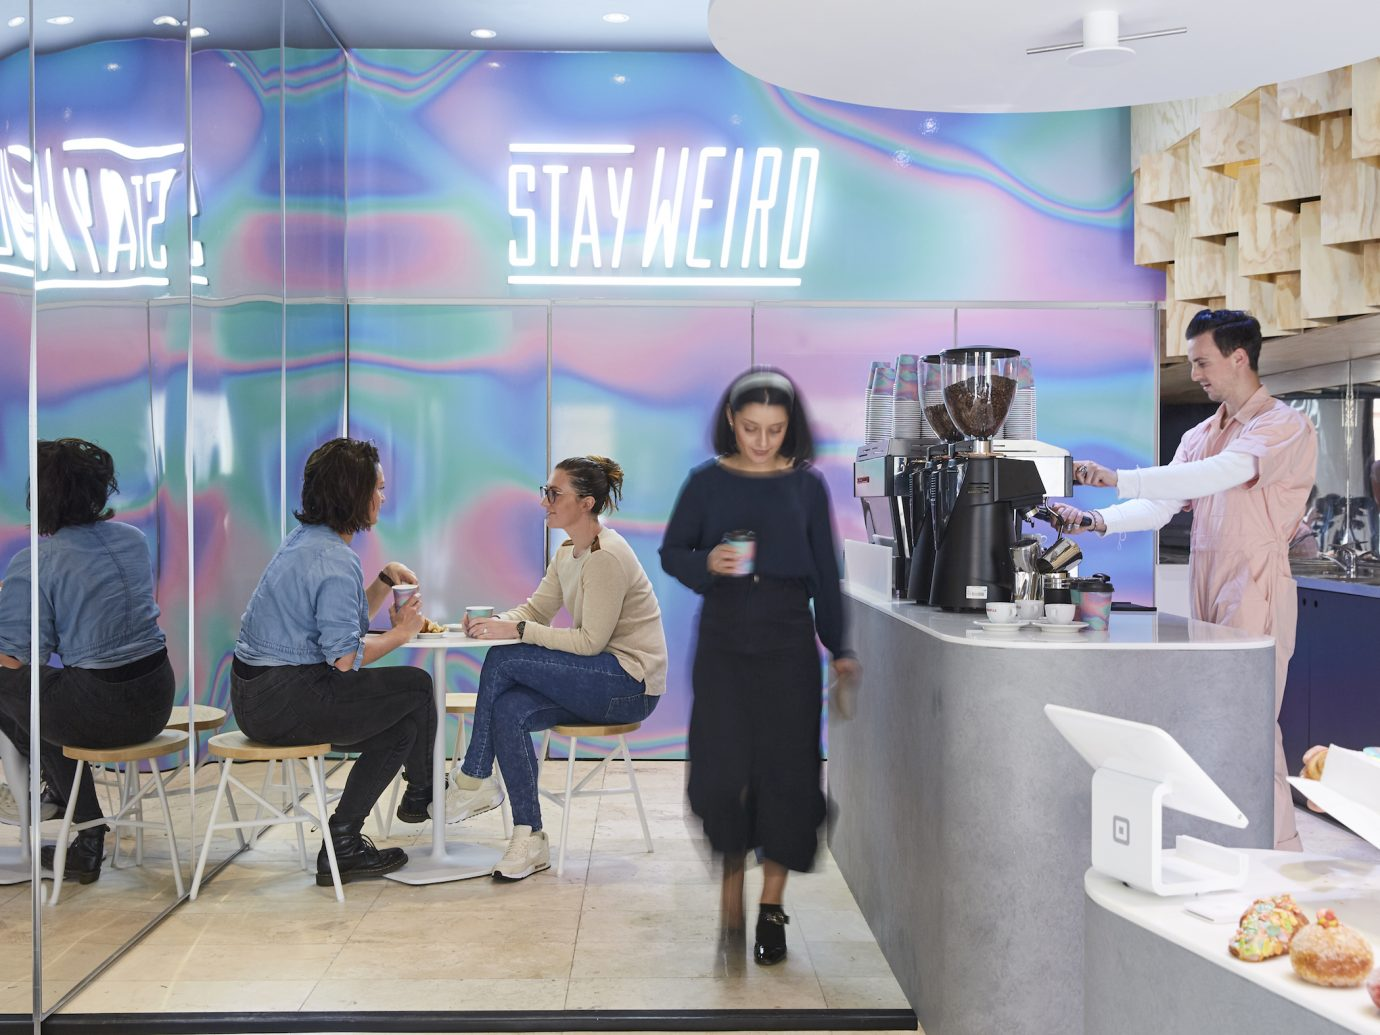 interior of shop with holographic walls